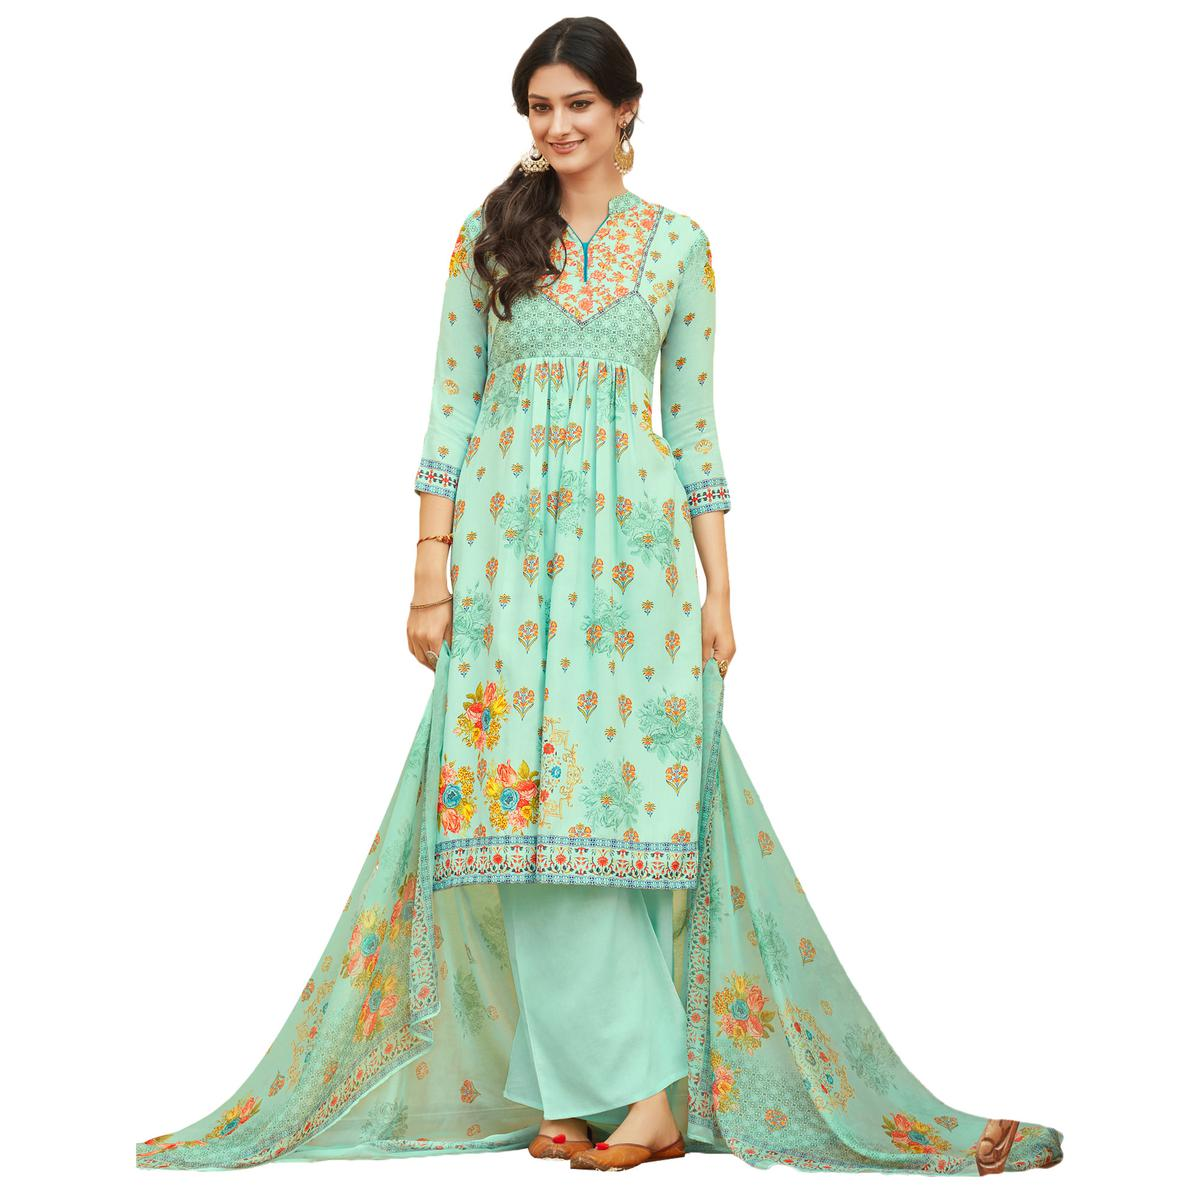 Light Blue Colored Digital Printed Pure Cotton Dress Material